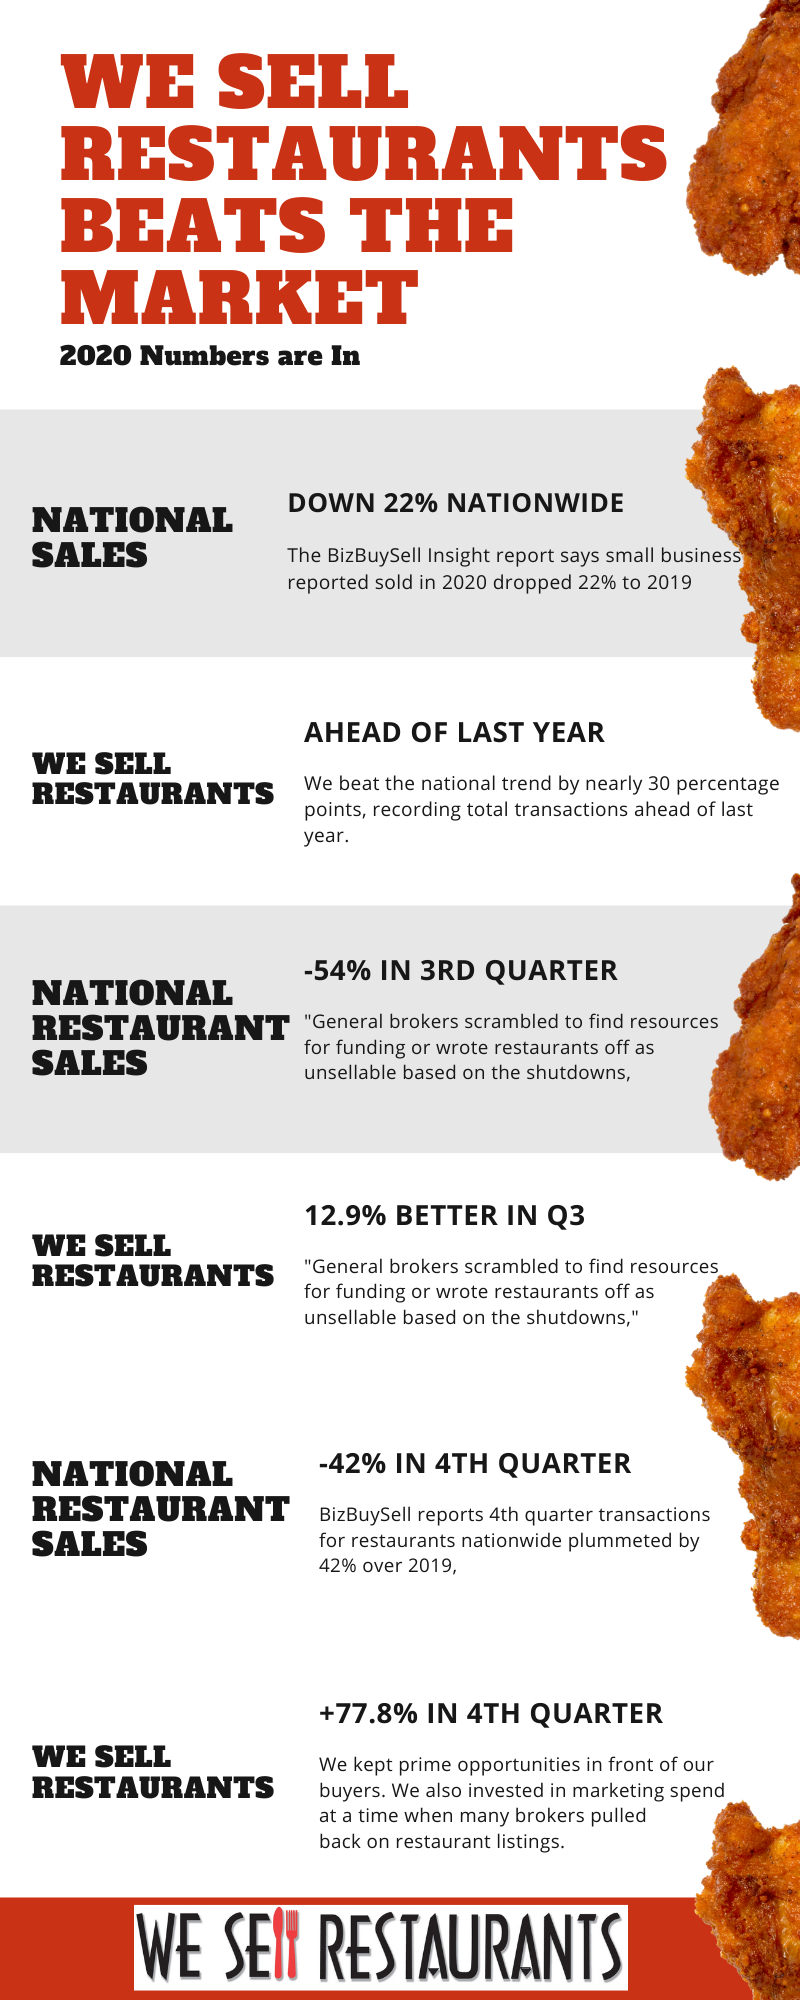 We Sell Restaurants Tops the Industry as 2020 Business Sales drop 22% Nationwide